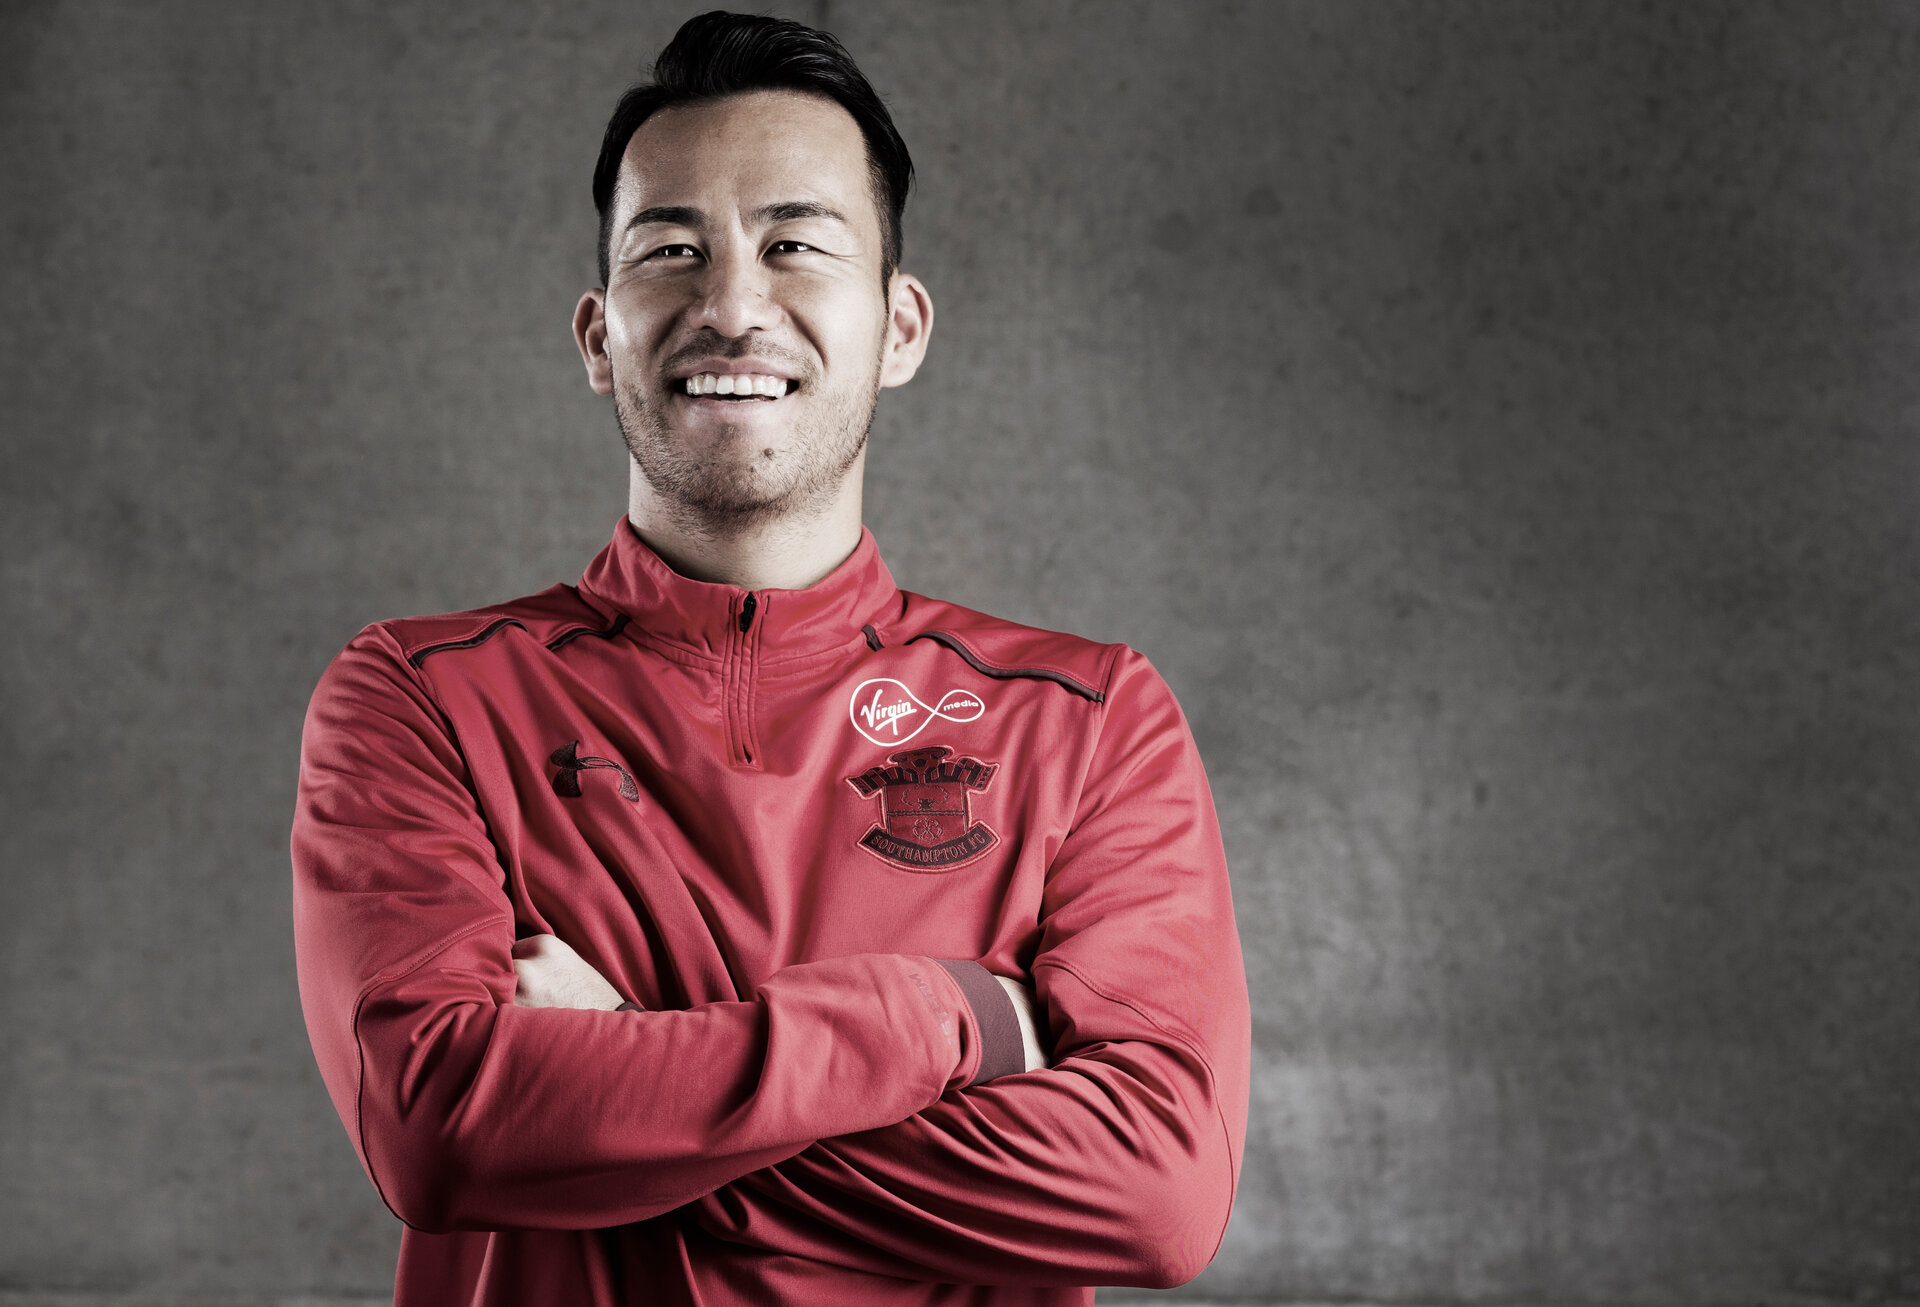 SOUTHAMPTON, ENGLAND - NOVEMBER 27: Southampton's Maya Yoshida pictured at the club's Staplewood Campus, for the Saints match day magazine, on November 27, 2017 in Southampton, England. (Photo by Matt Watson/Southampton FC via Getty Images)